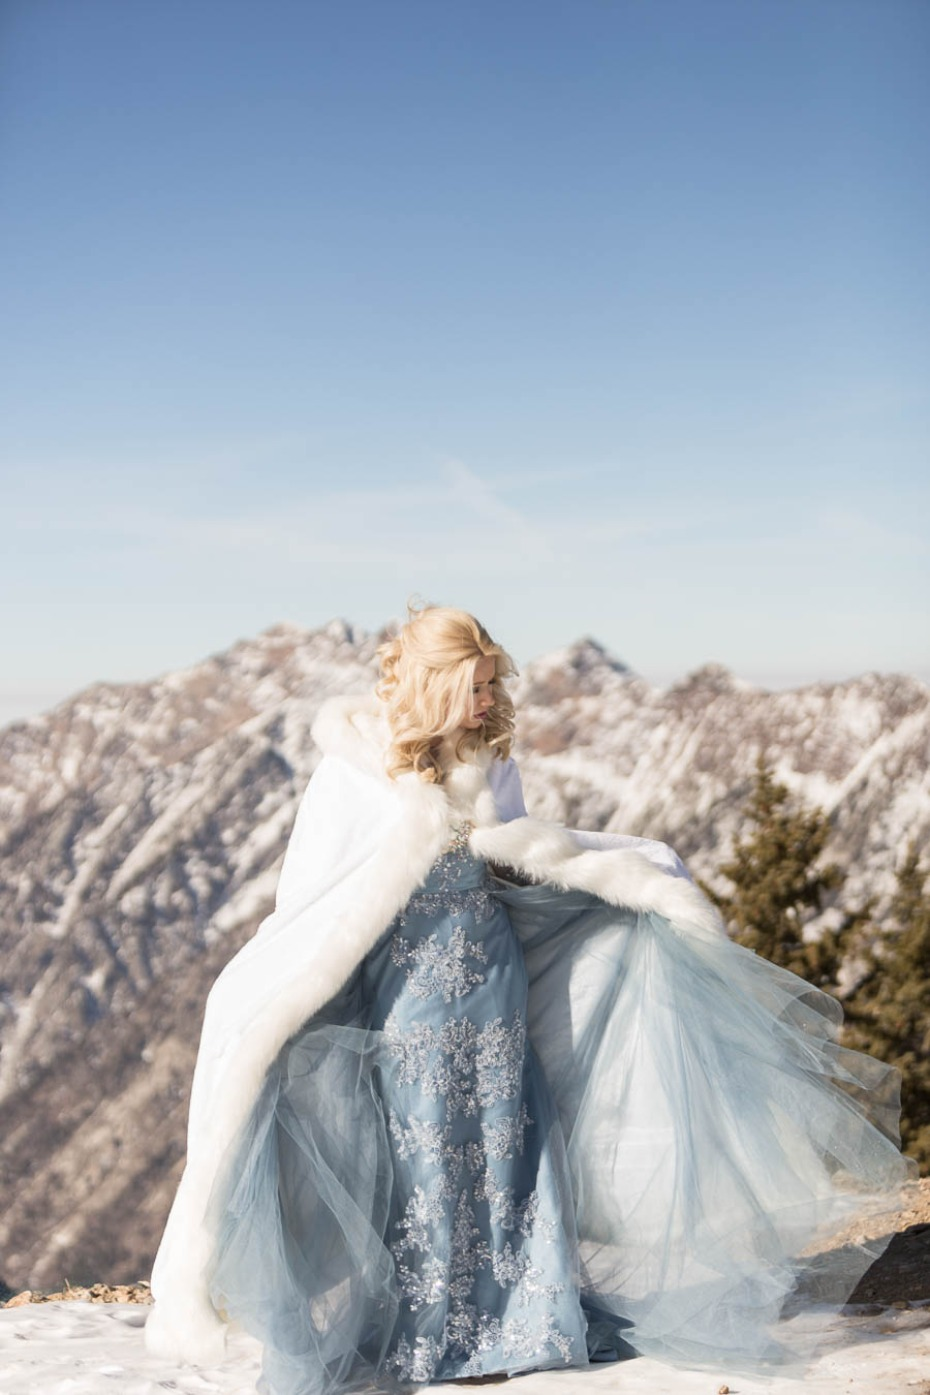 Disneys Frozen inspired wedding style